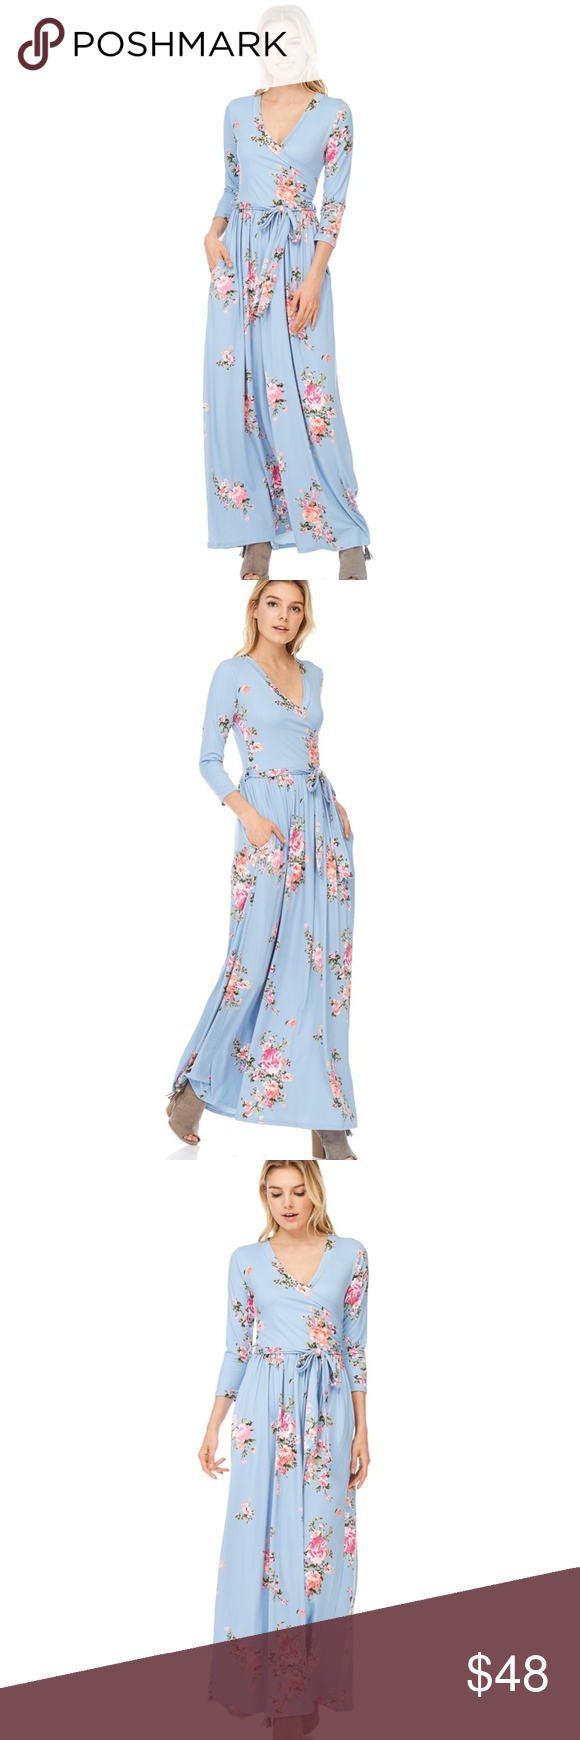 82e383abd2a NWT Light Blue Floral Maxi Dress by Reborn J  34 SALE PRICE ENDS TODAY! New  with tags. This baby blue dress features a maxi length